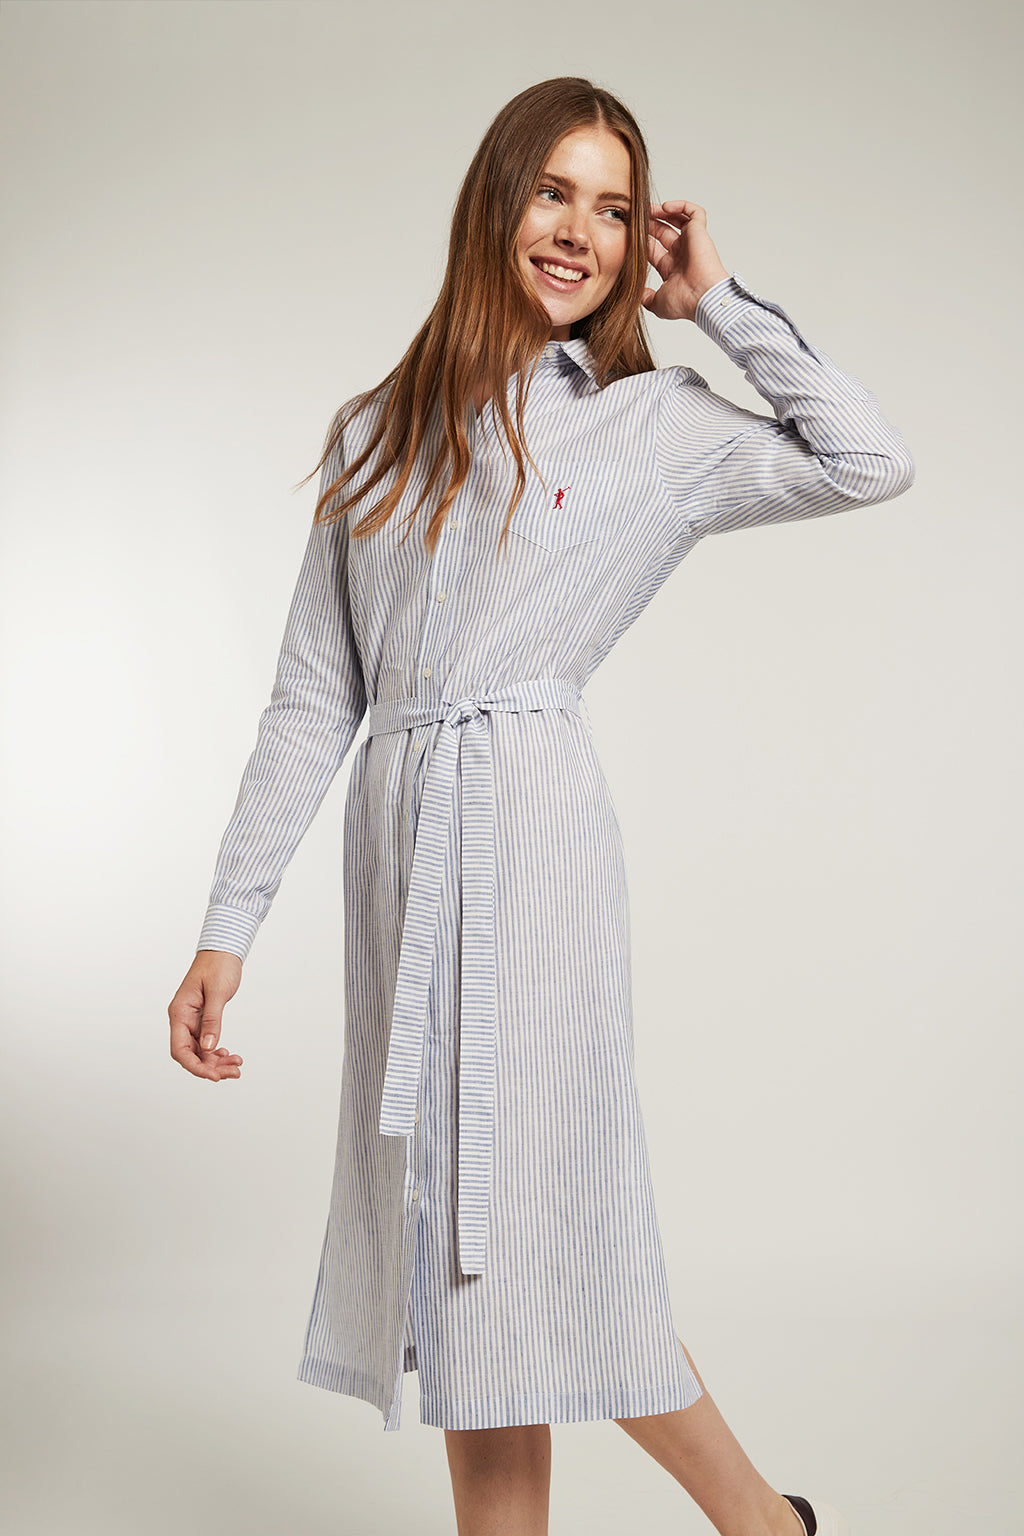 Linen and cotton dress with blue stripes